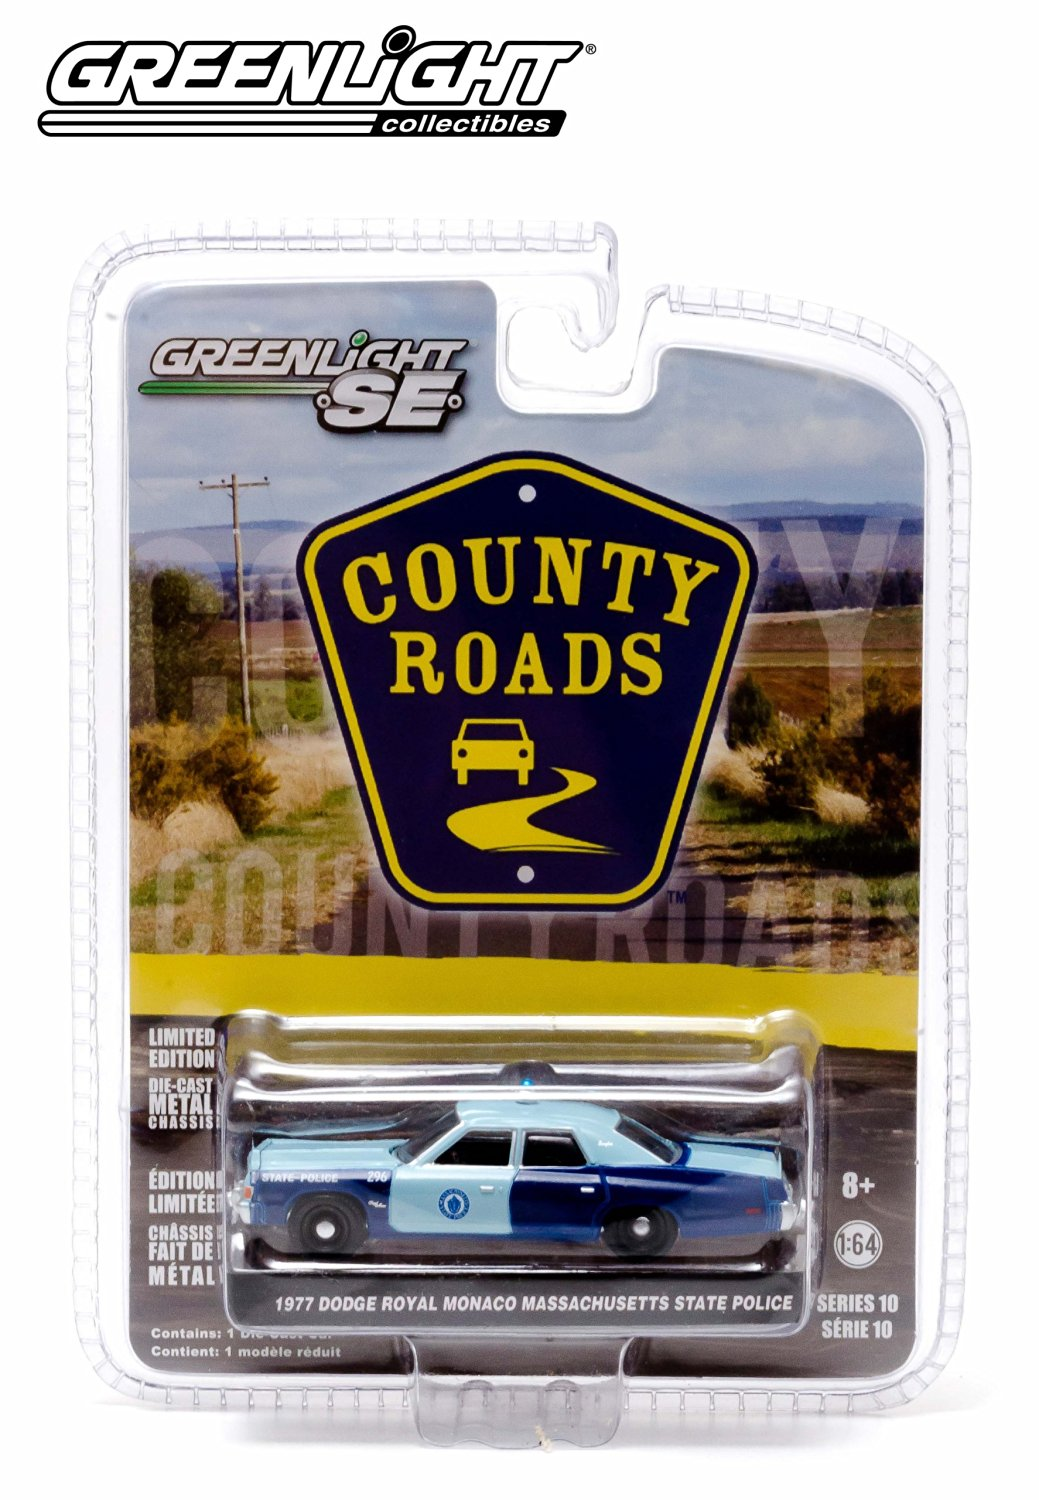 1977 Dodge Royal Monaco Massachusetts State Police * County Roads Series 10 * 2014 Greenlight 1:64 Scale Limited Edition Die-Cast Vehicle